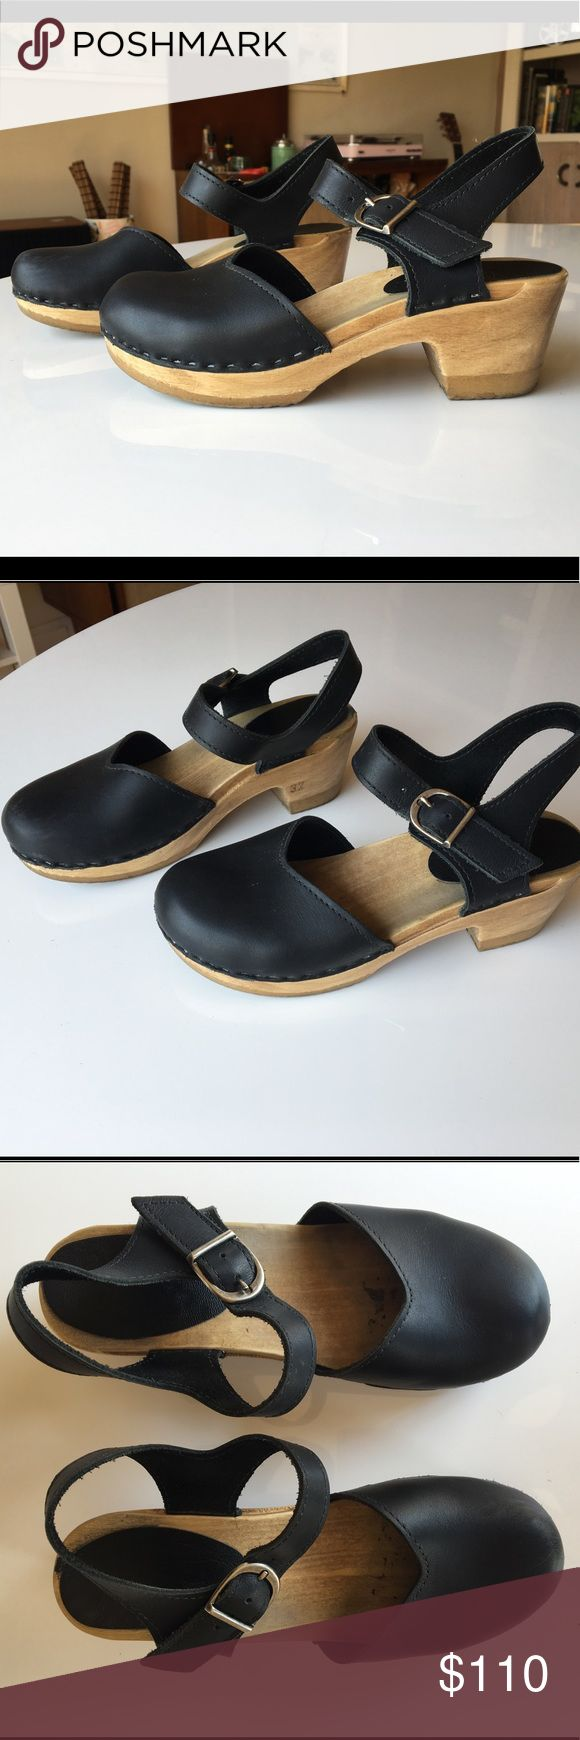 Sven Clogs - Mary Jane black medium heel size 37 I LOVE THESE!!! Unfortunately they are just a bit too small for me :( they are a size 37... Sven clogs run a bit small. I am a solid US size 7, and I should've gone up a size. These will fit people with US size 6 or 6.5 best. I've worn these about 15-20 times. They're in great condition, already perfectly worn in!! The wearing in period can be quite painful with clogs but the leather on these is nice and soft now. There are some scuffs on the…